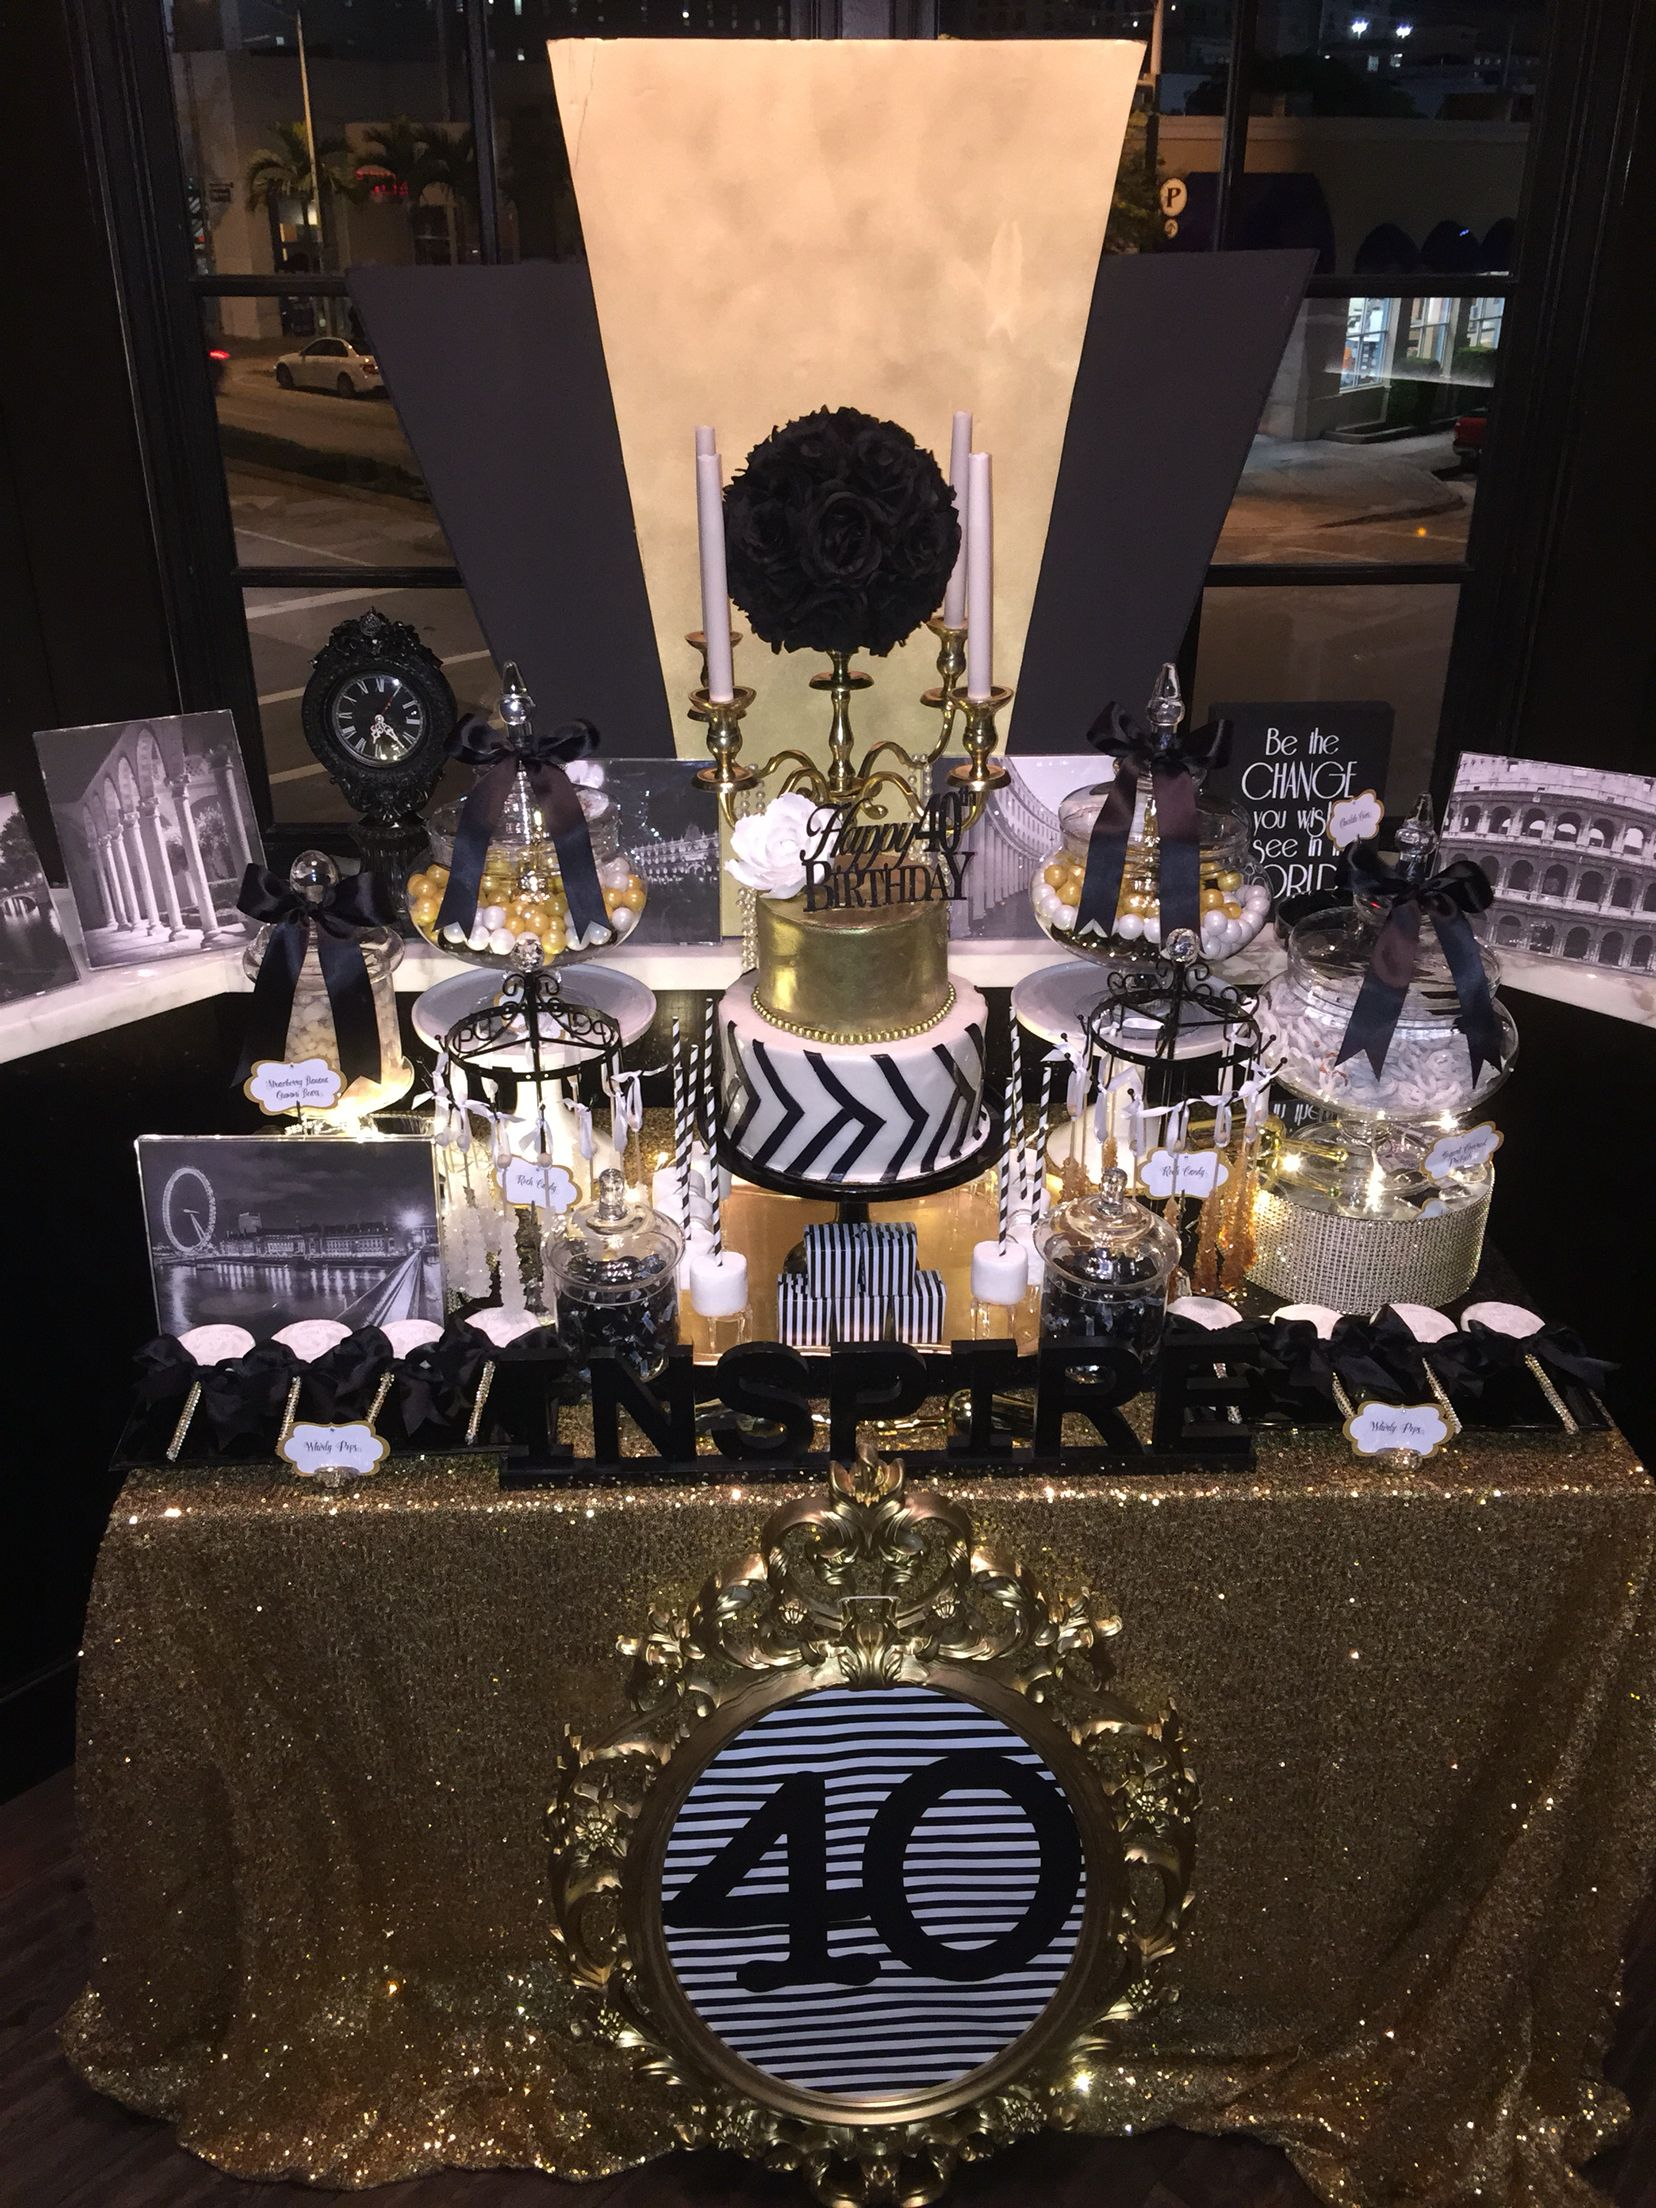 Candy buffet ideas for sweet sixteen - Black White And Gold Candy Buffet With A Glamorous 2 Tier Fondant Cake Brushed